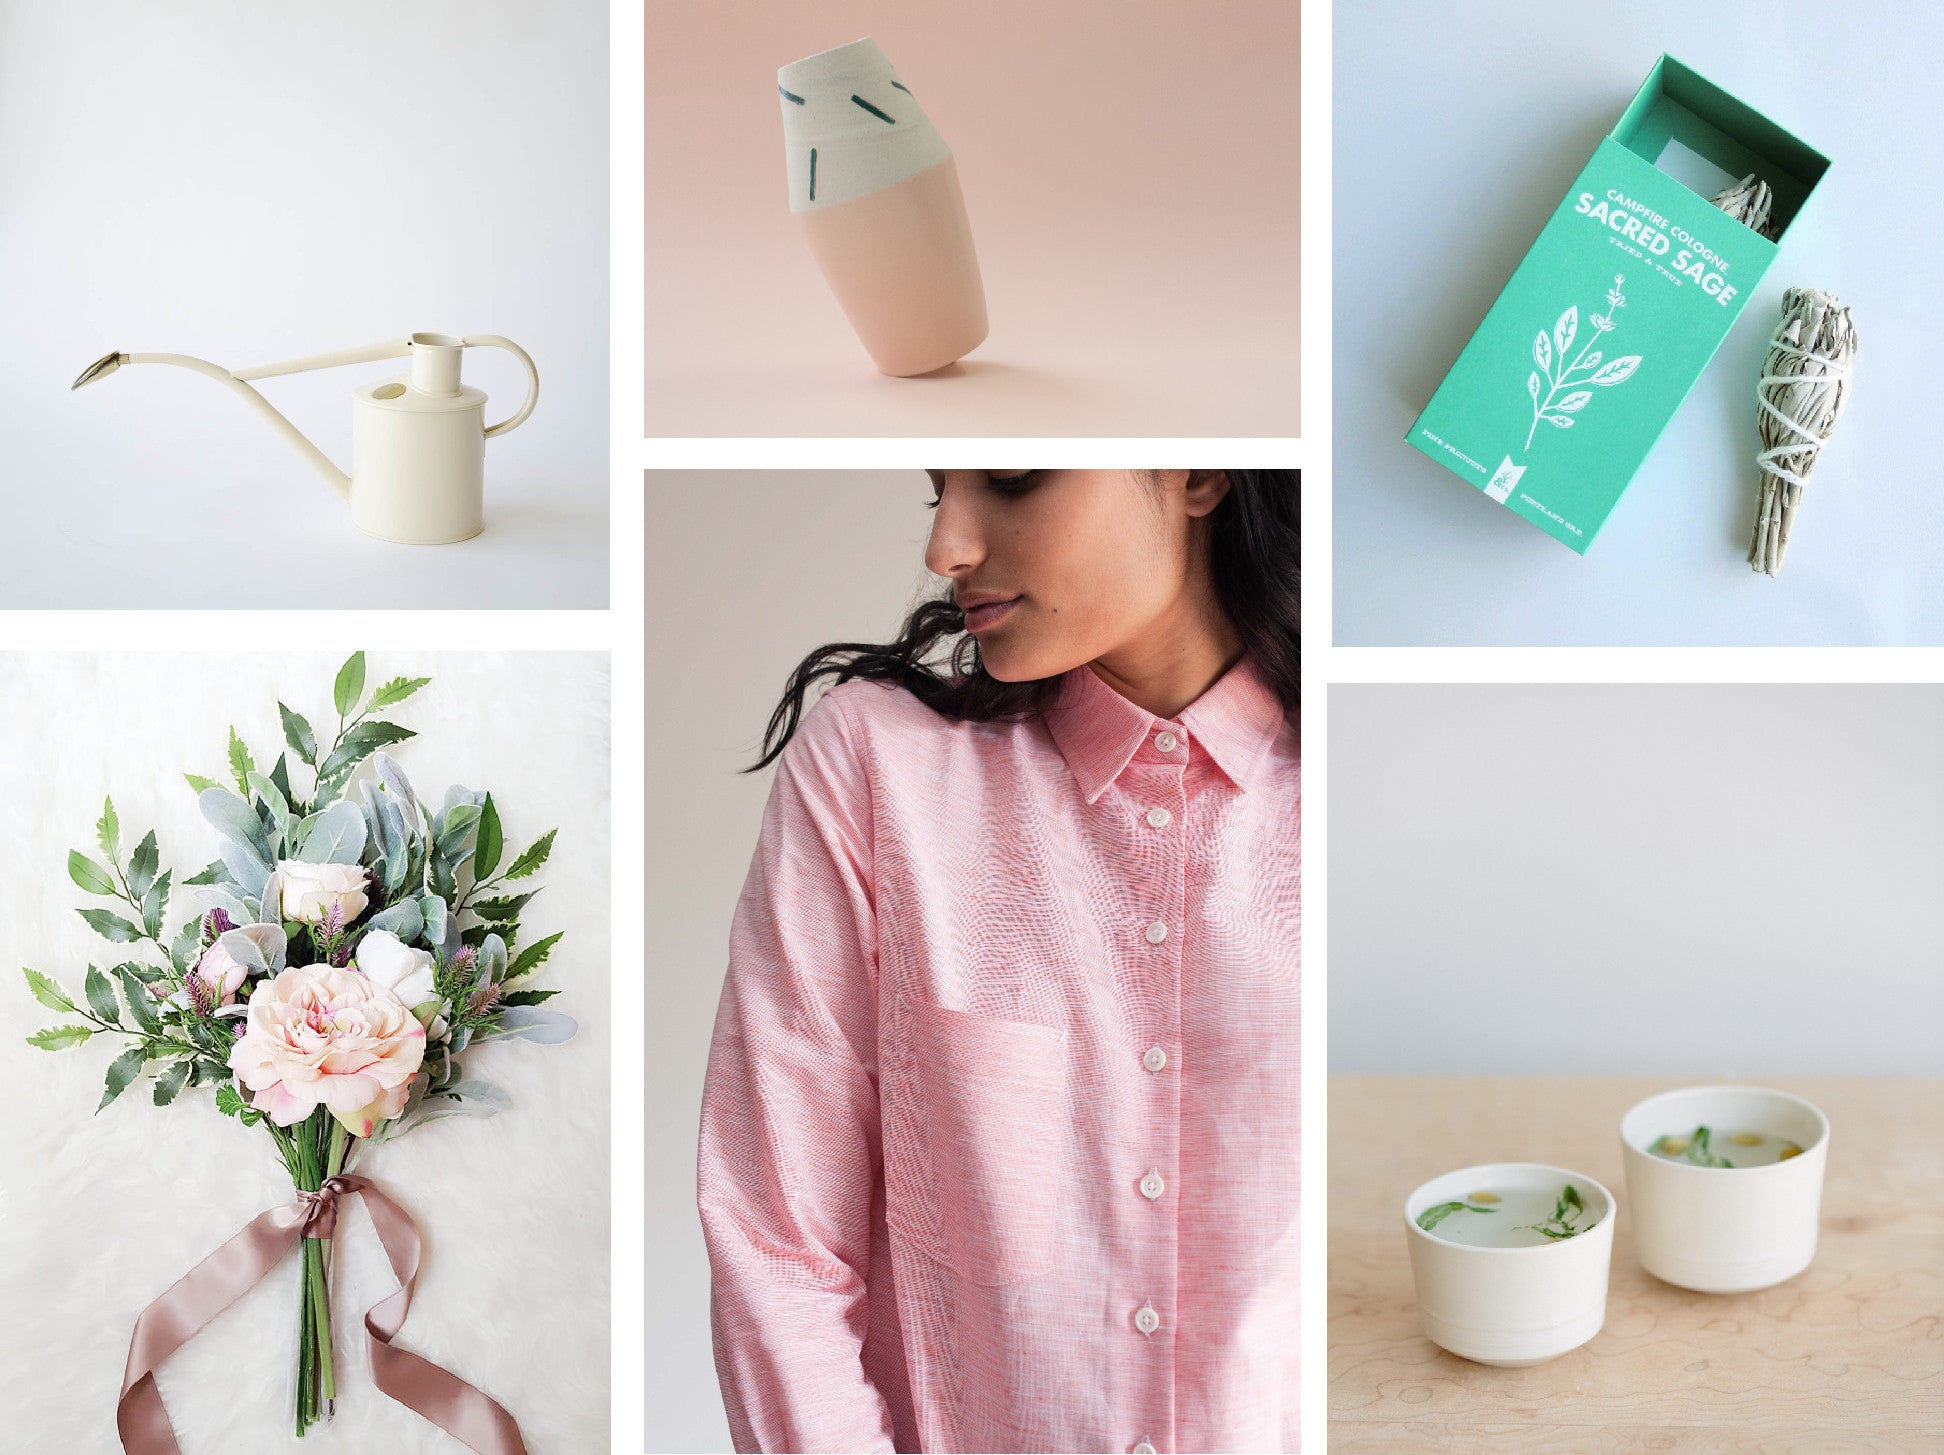 The Florist Women's linen shirt curated with Canadian products